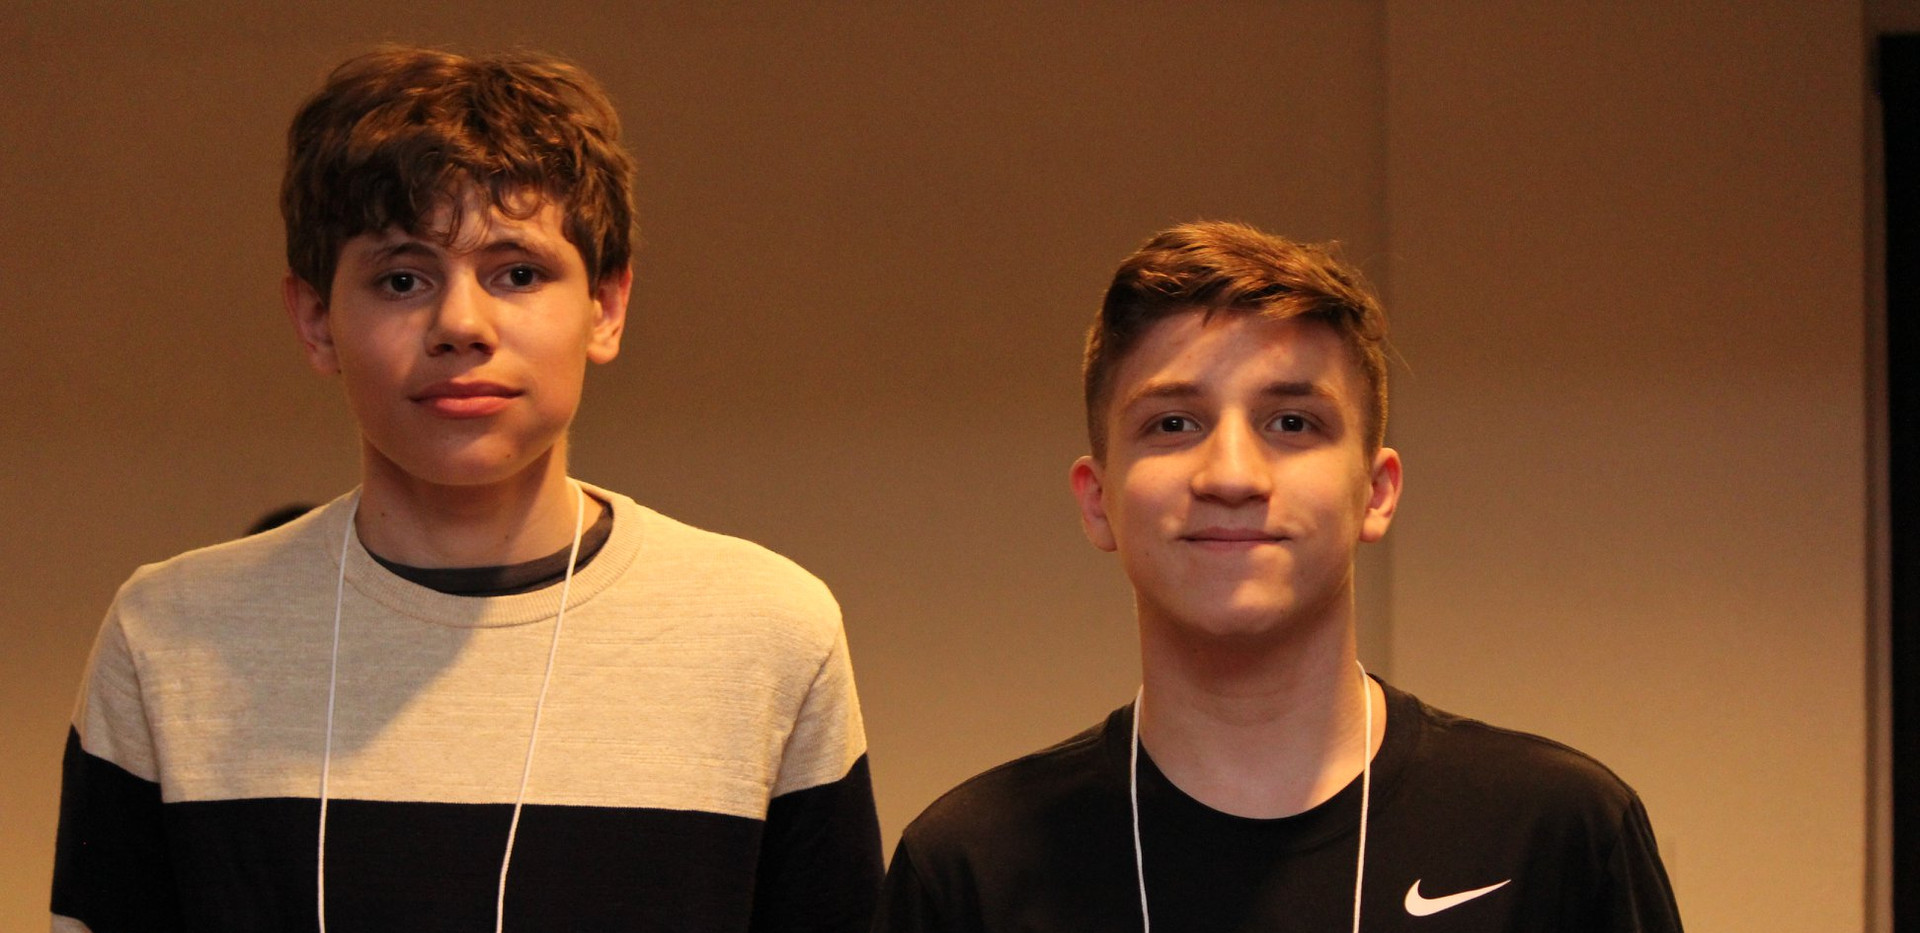 New Youth Ambassadors Aiden and Sam R.